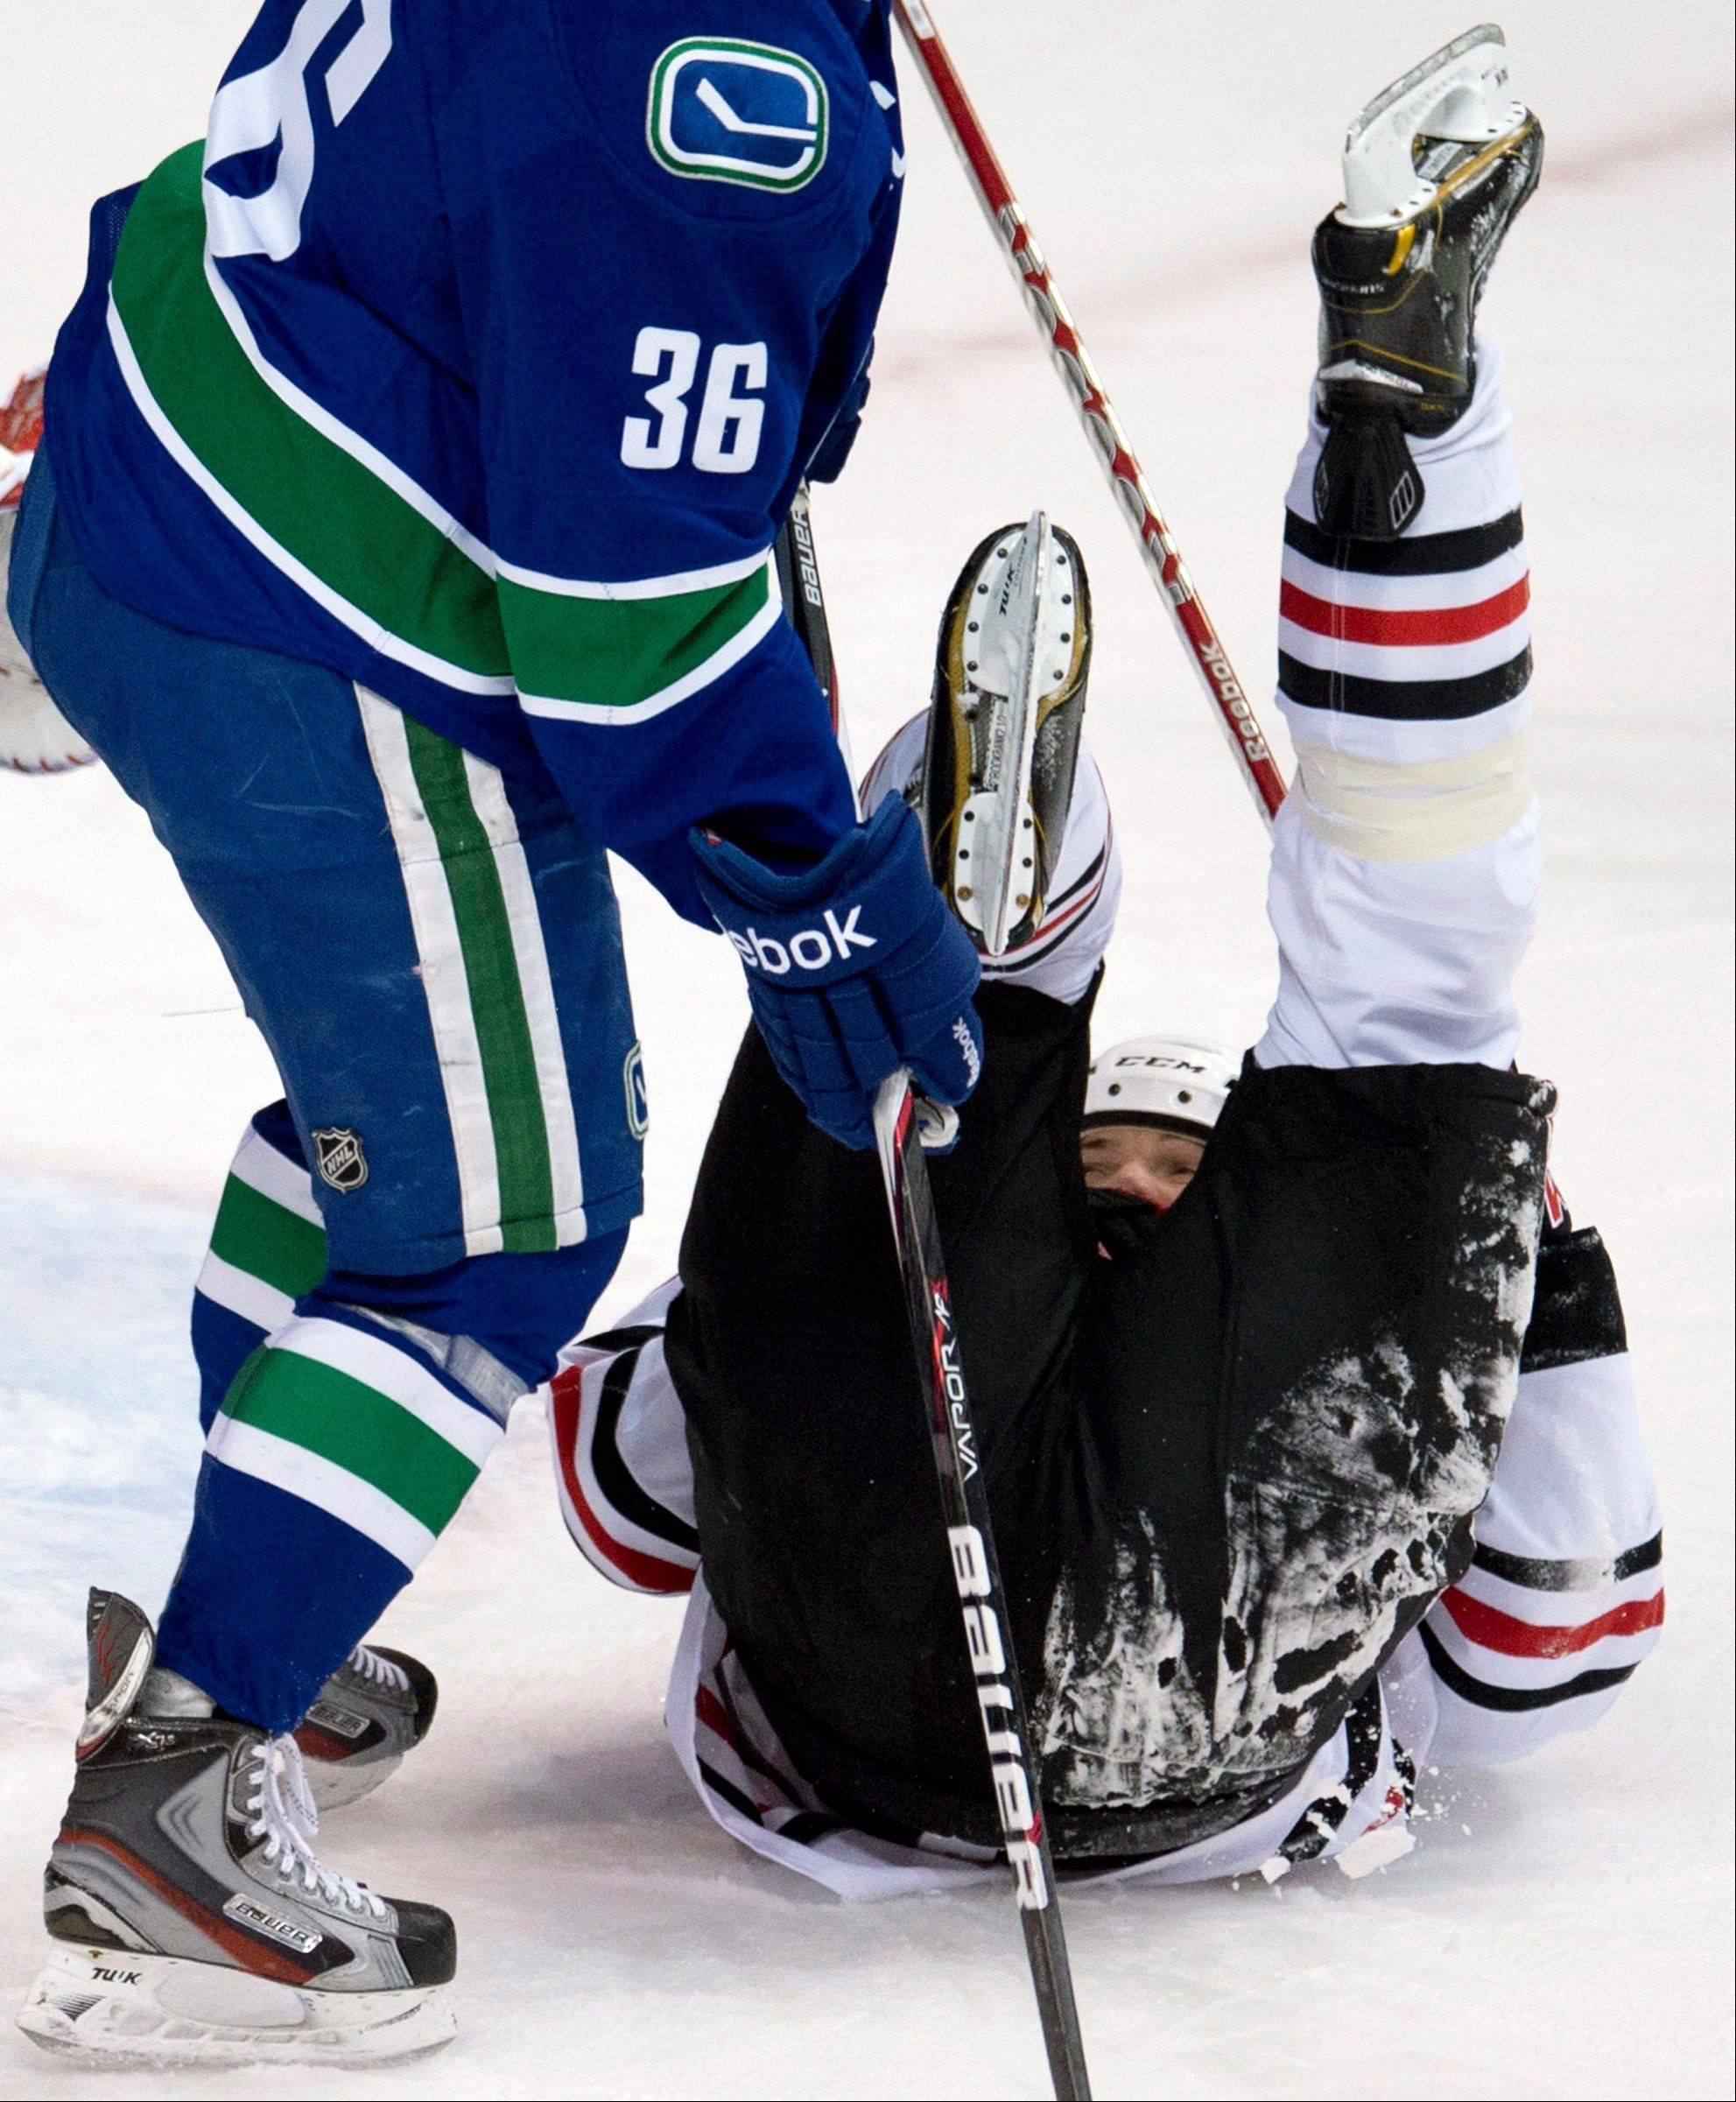 Vancouver Canucks right wing Jannik Hansen (36) skates near as Chicago Blackhawks defenseman Sheldon Brookbank (17) falls to the ice after being hit by the puck during the first period of their NHL hockey game in Vancouver, British Columbia, Monday, April 22, 2013.